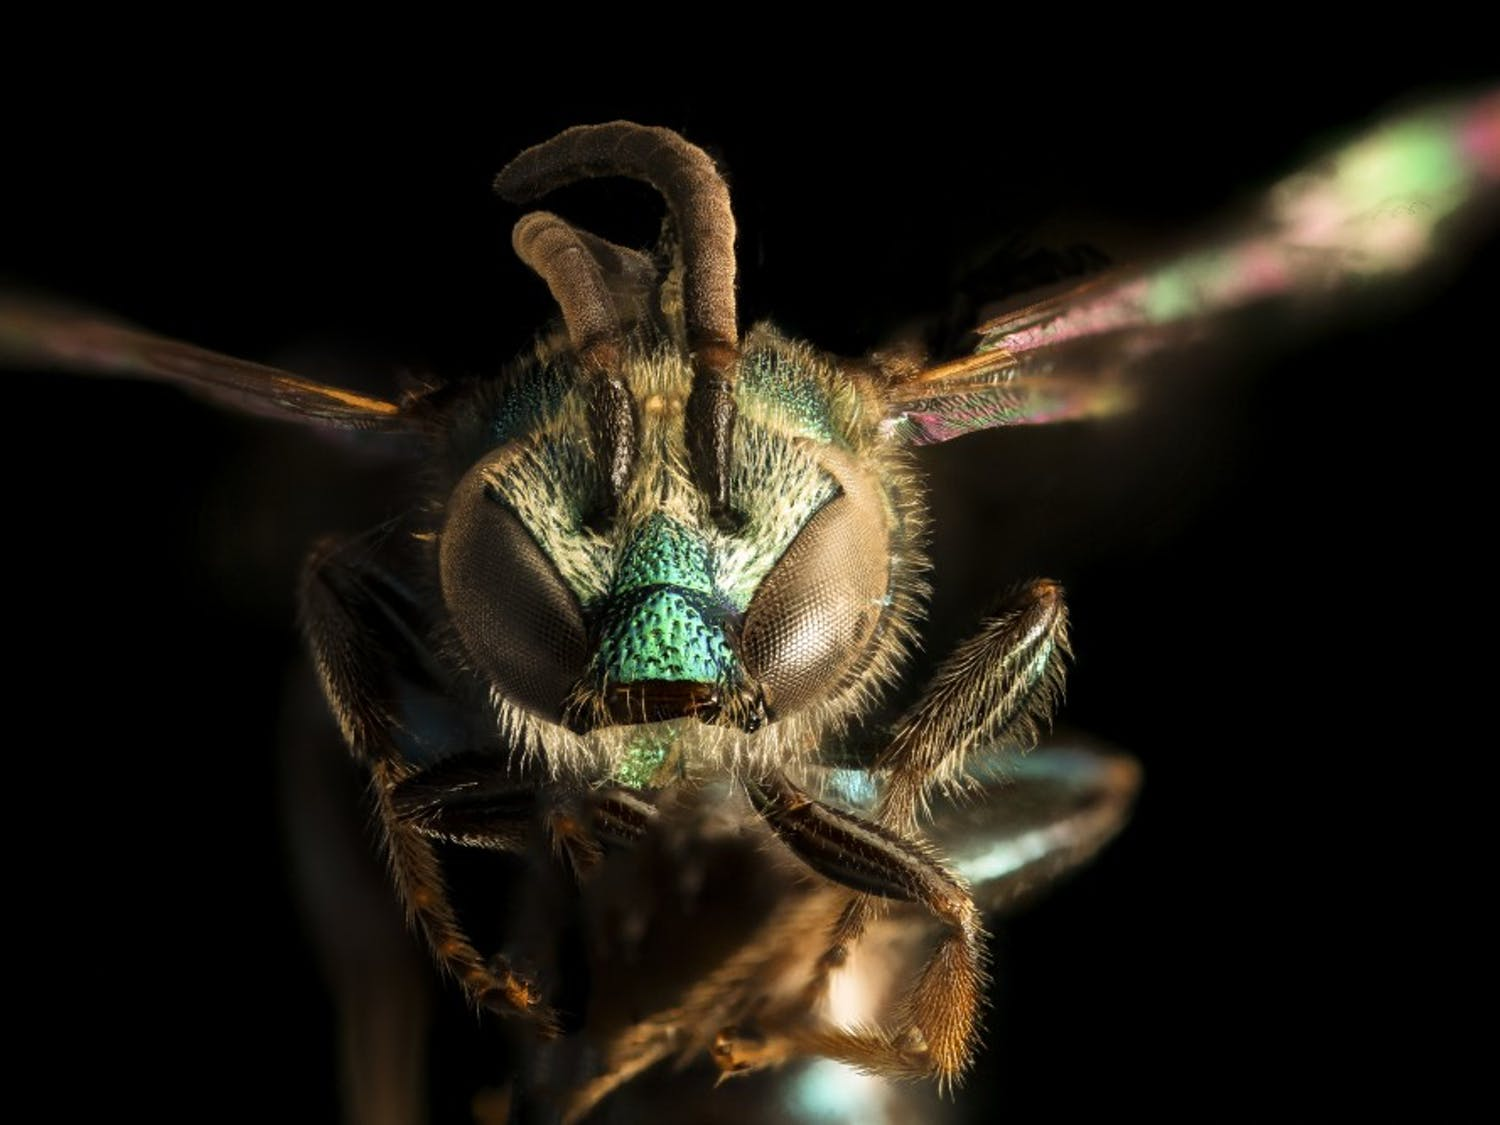 The Augochlora pura is one of the most common bees in Eastern North America. Photo by Amanda Robinson.